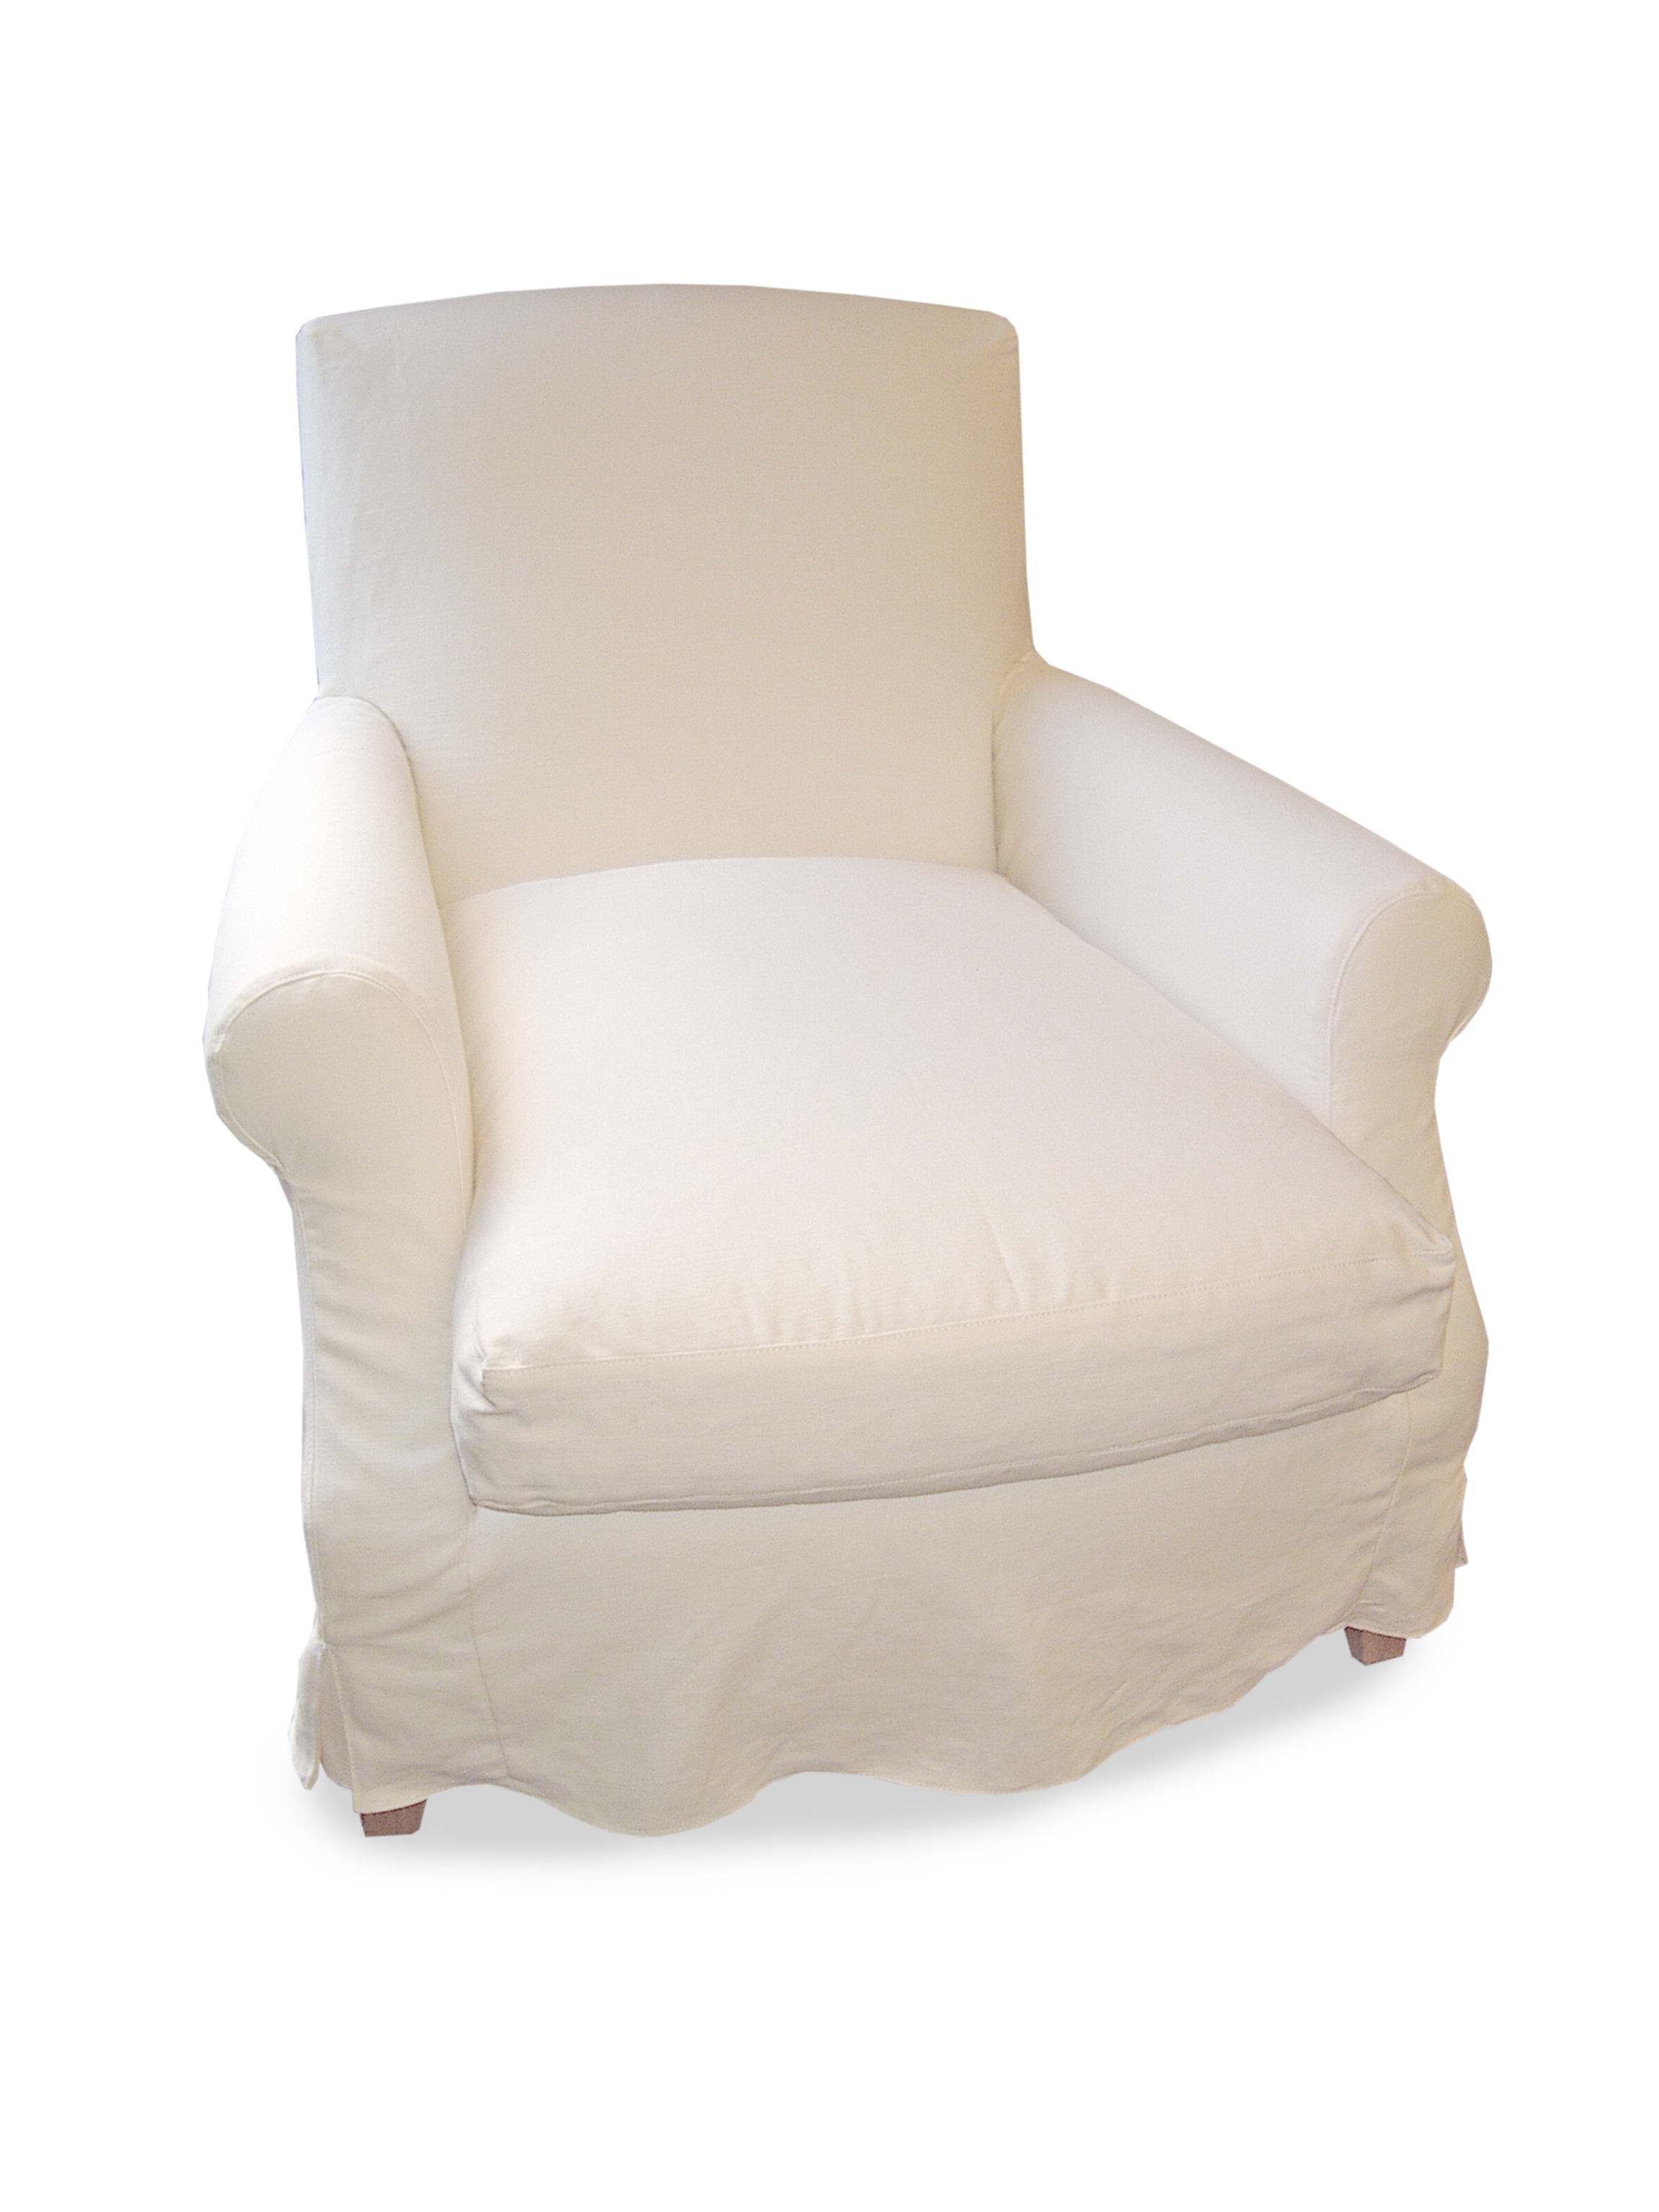 Lounge armchairwith square tapering legswith loose cover in white top-stitched linen with kick pleats, feather/down cushion